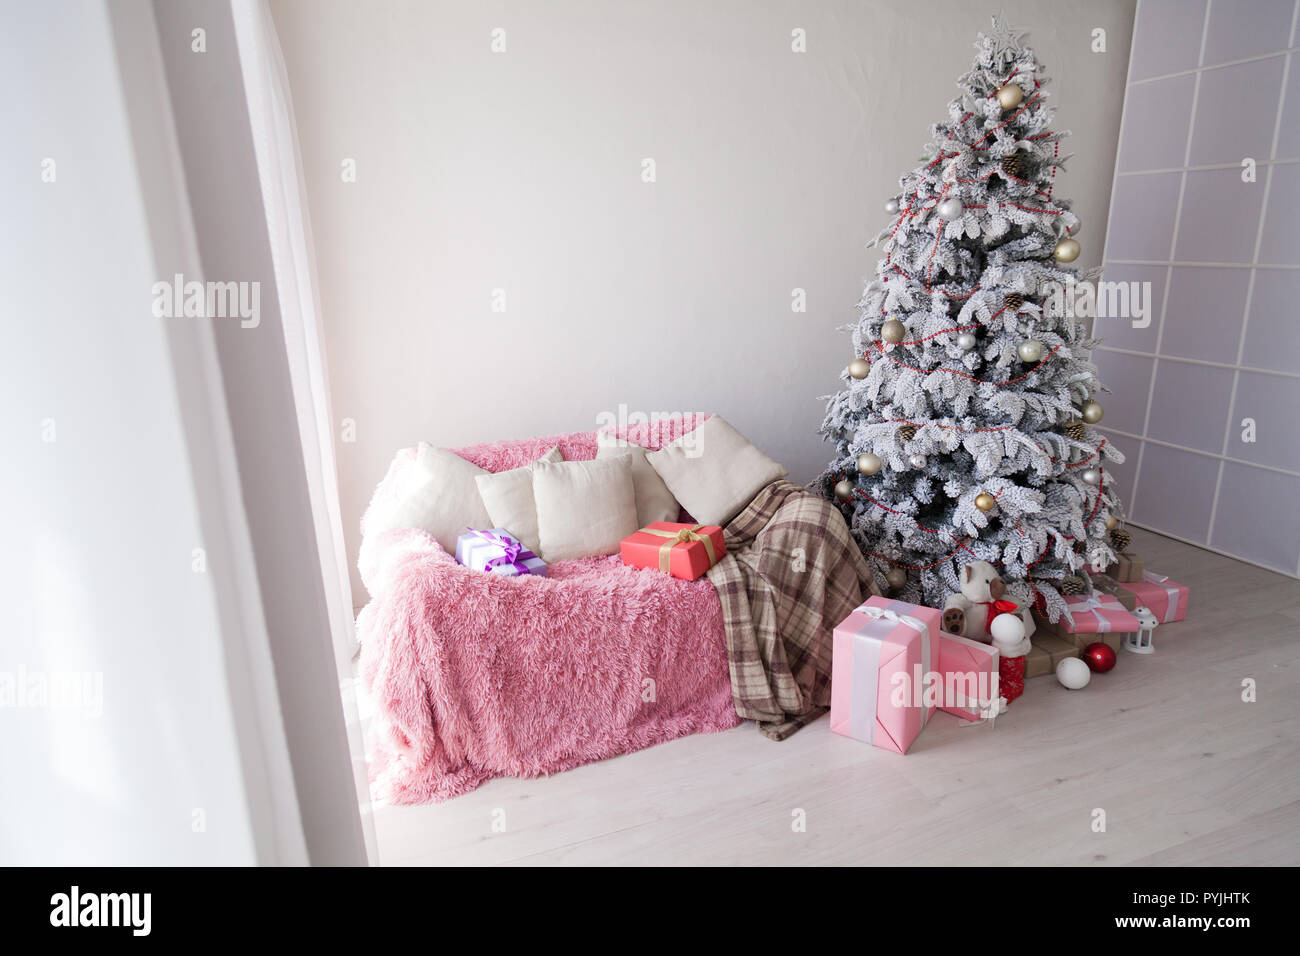 White Christmas tree in the room with gifts - Stock Image